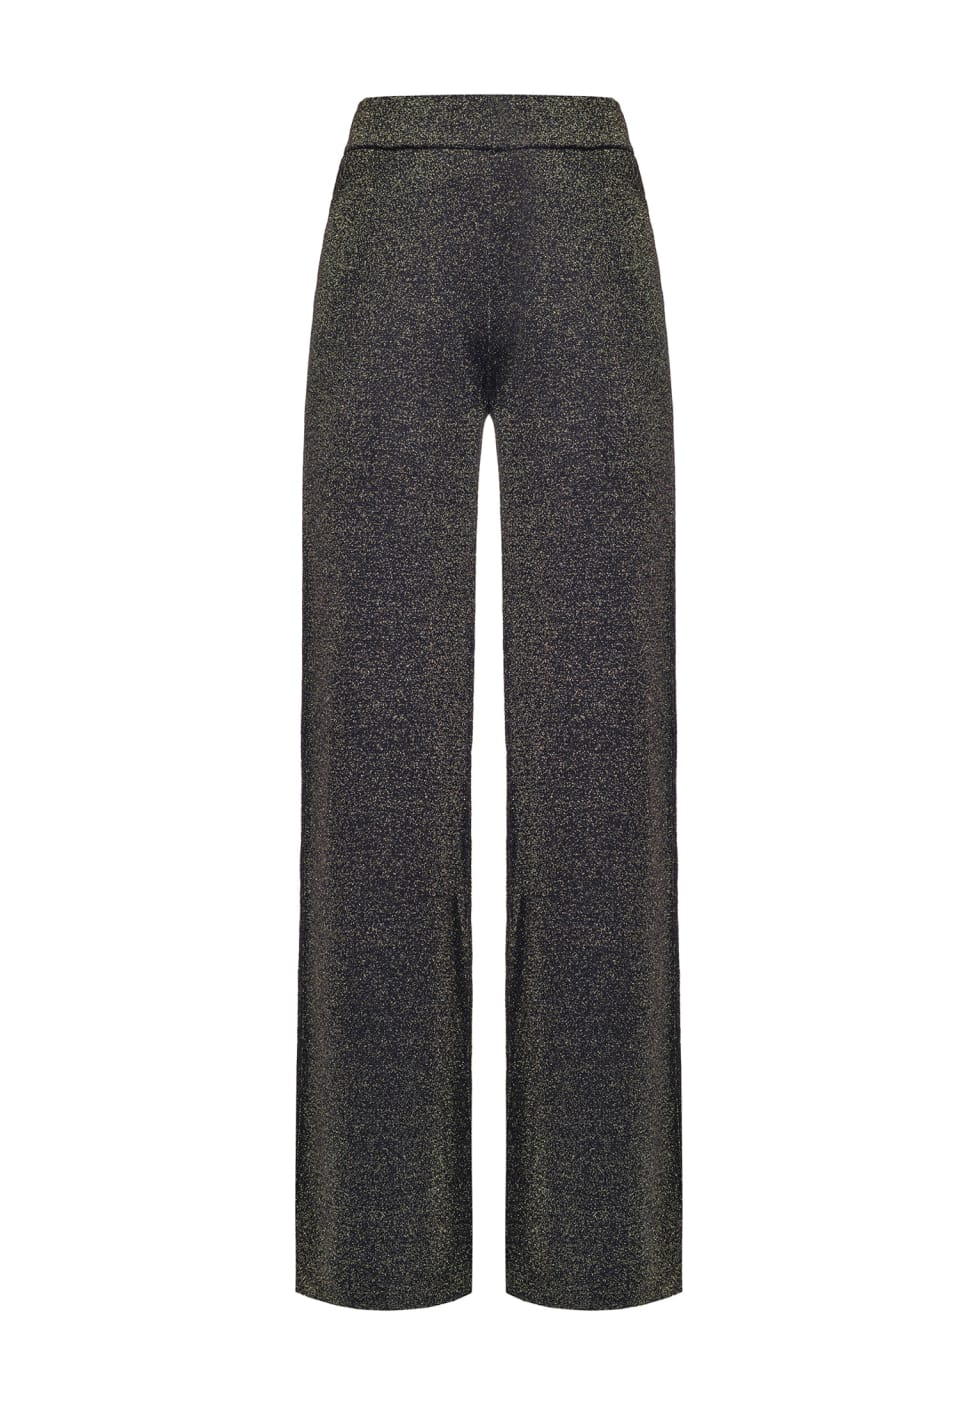 Lurex knit trousers